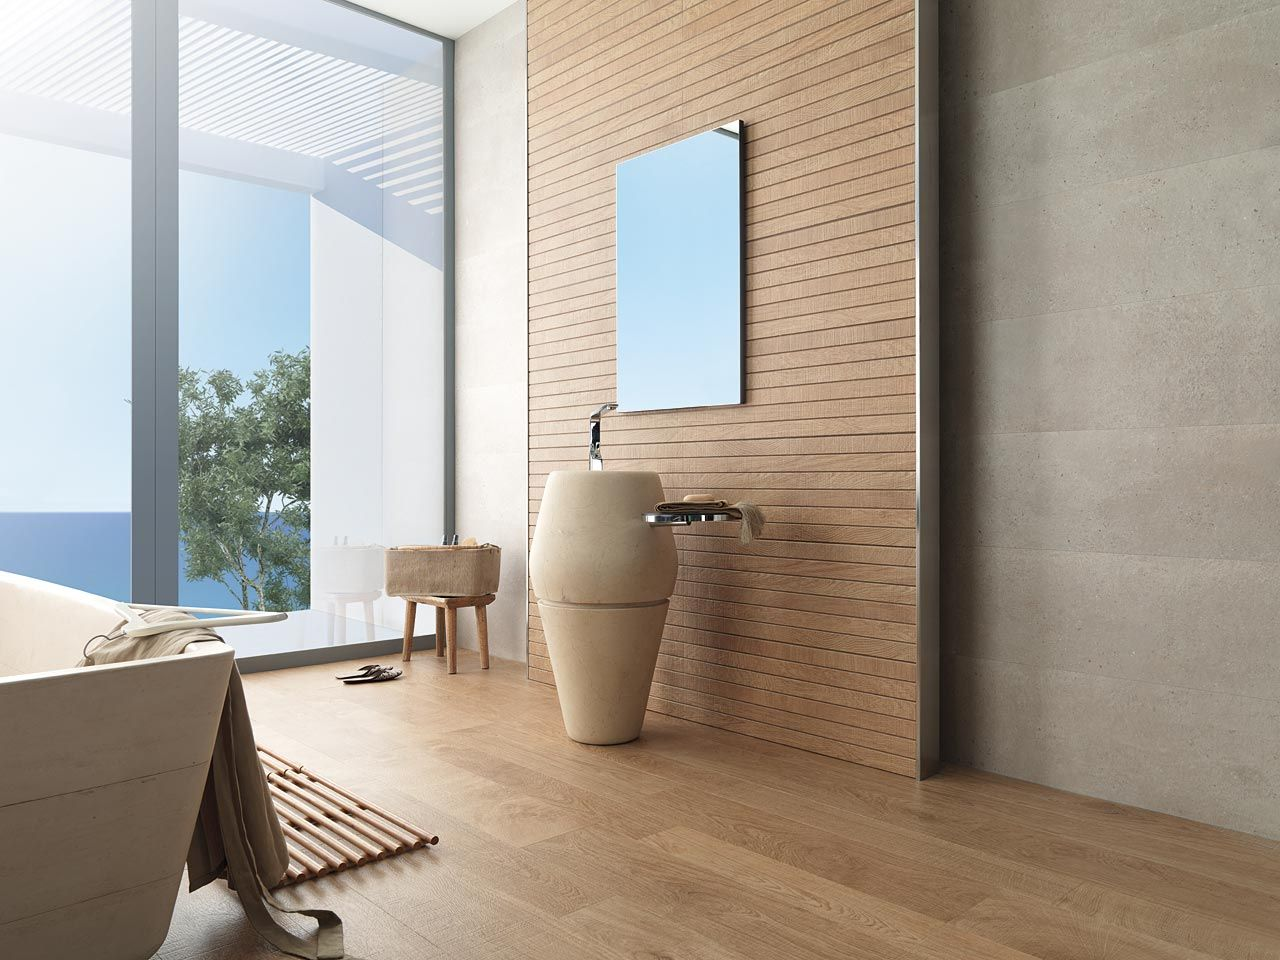 Porcelanosa liston oxford natural timber panelling look tile par ker wood effect wall tiles ceramic parquet dailygadgetfo Image collections